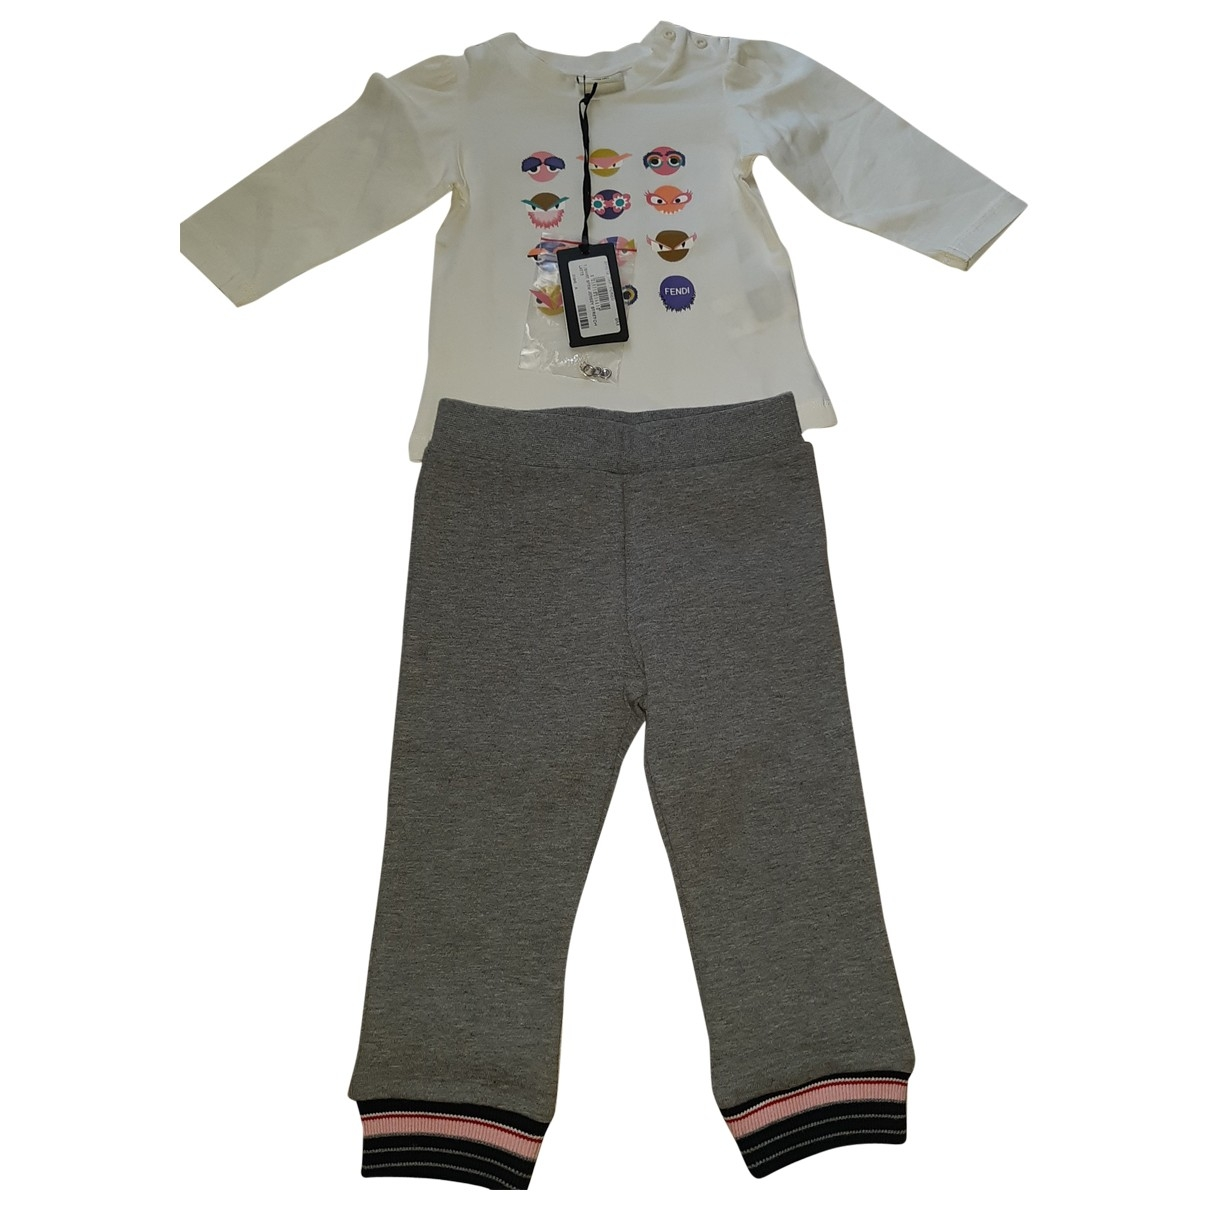 Fendi \N Multicolour Cotton Outfits for Kids 9 months - up to 71cm FR